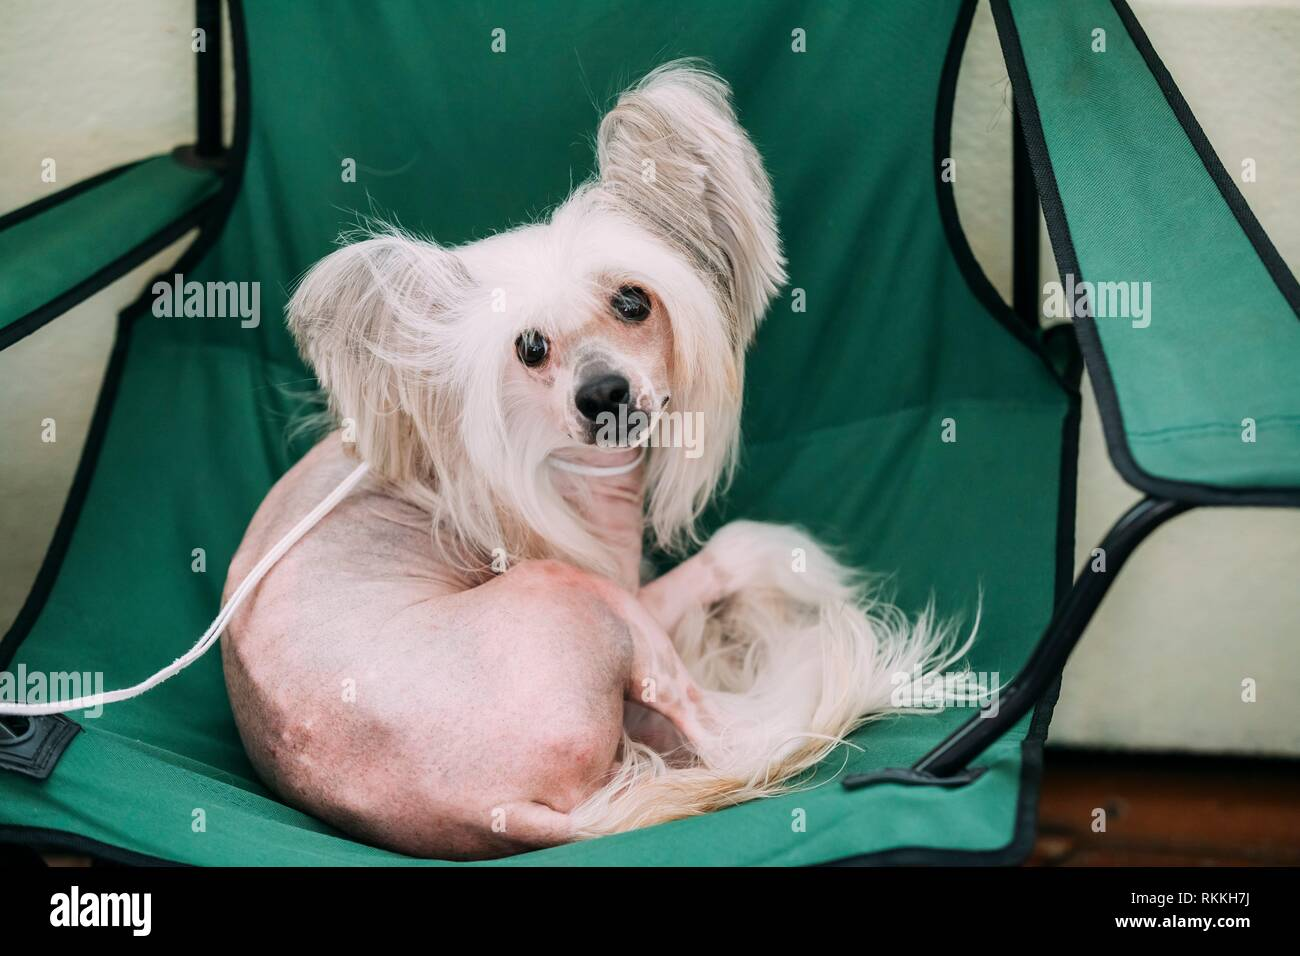 Young White Chinese Crested Dog Sit in Chair. Hairless breed of dog. Light skin. - Stock Image